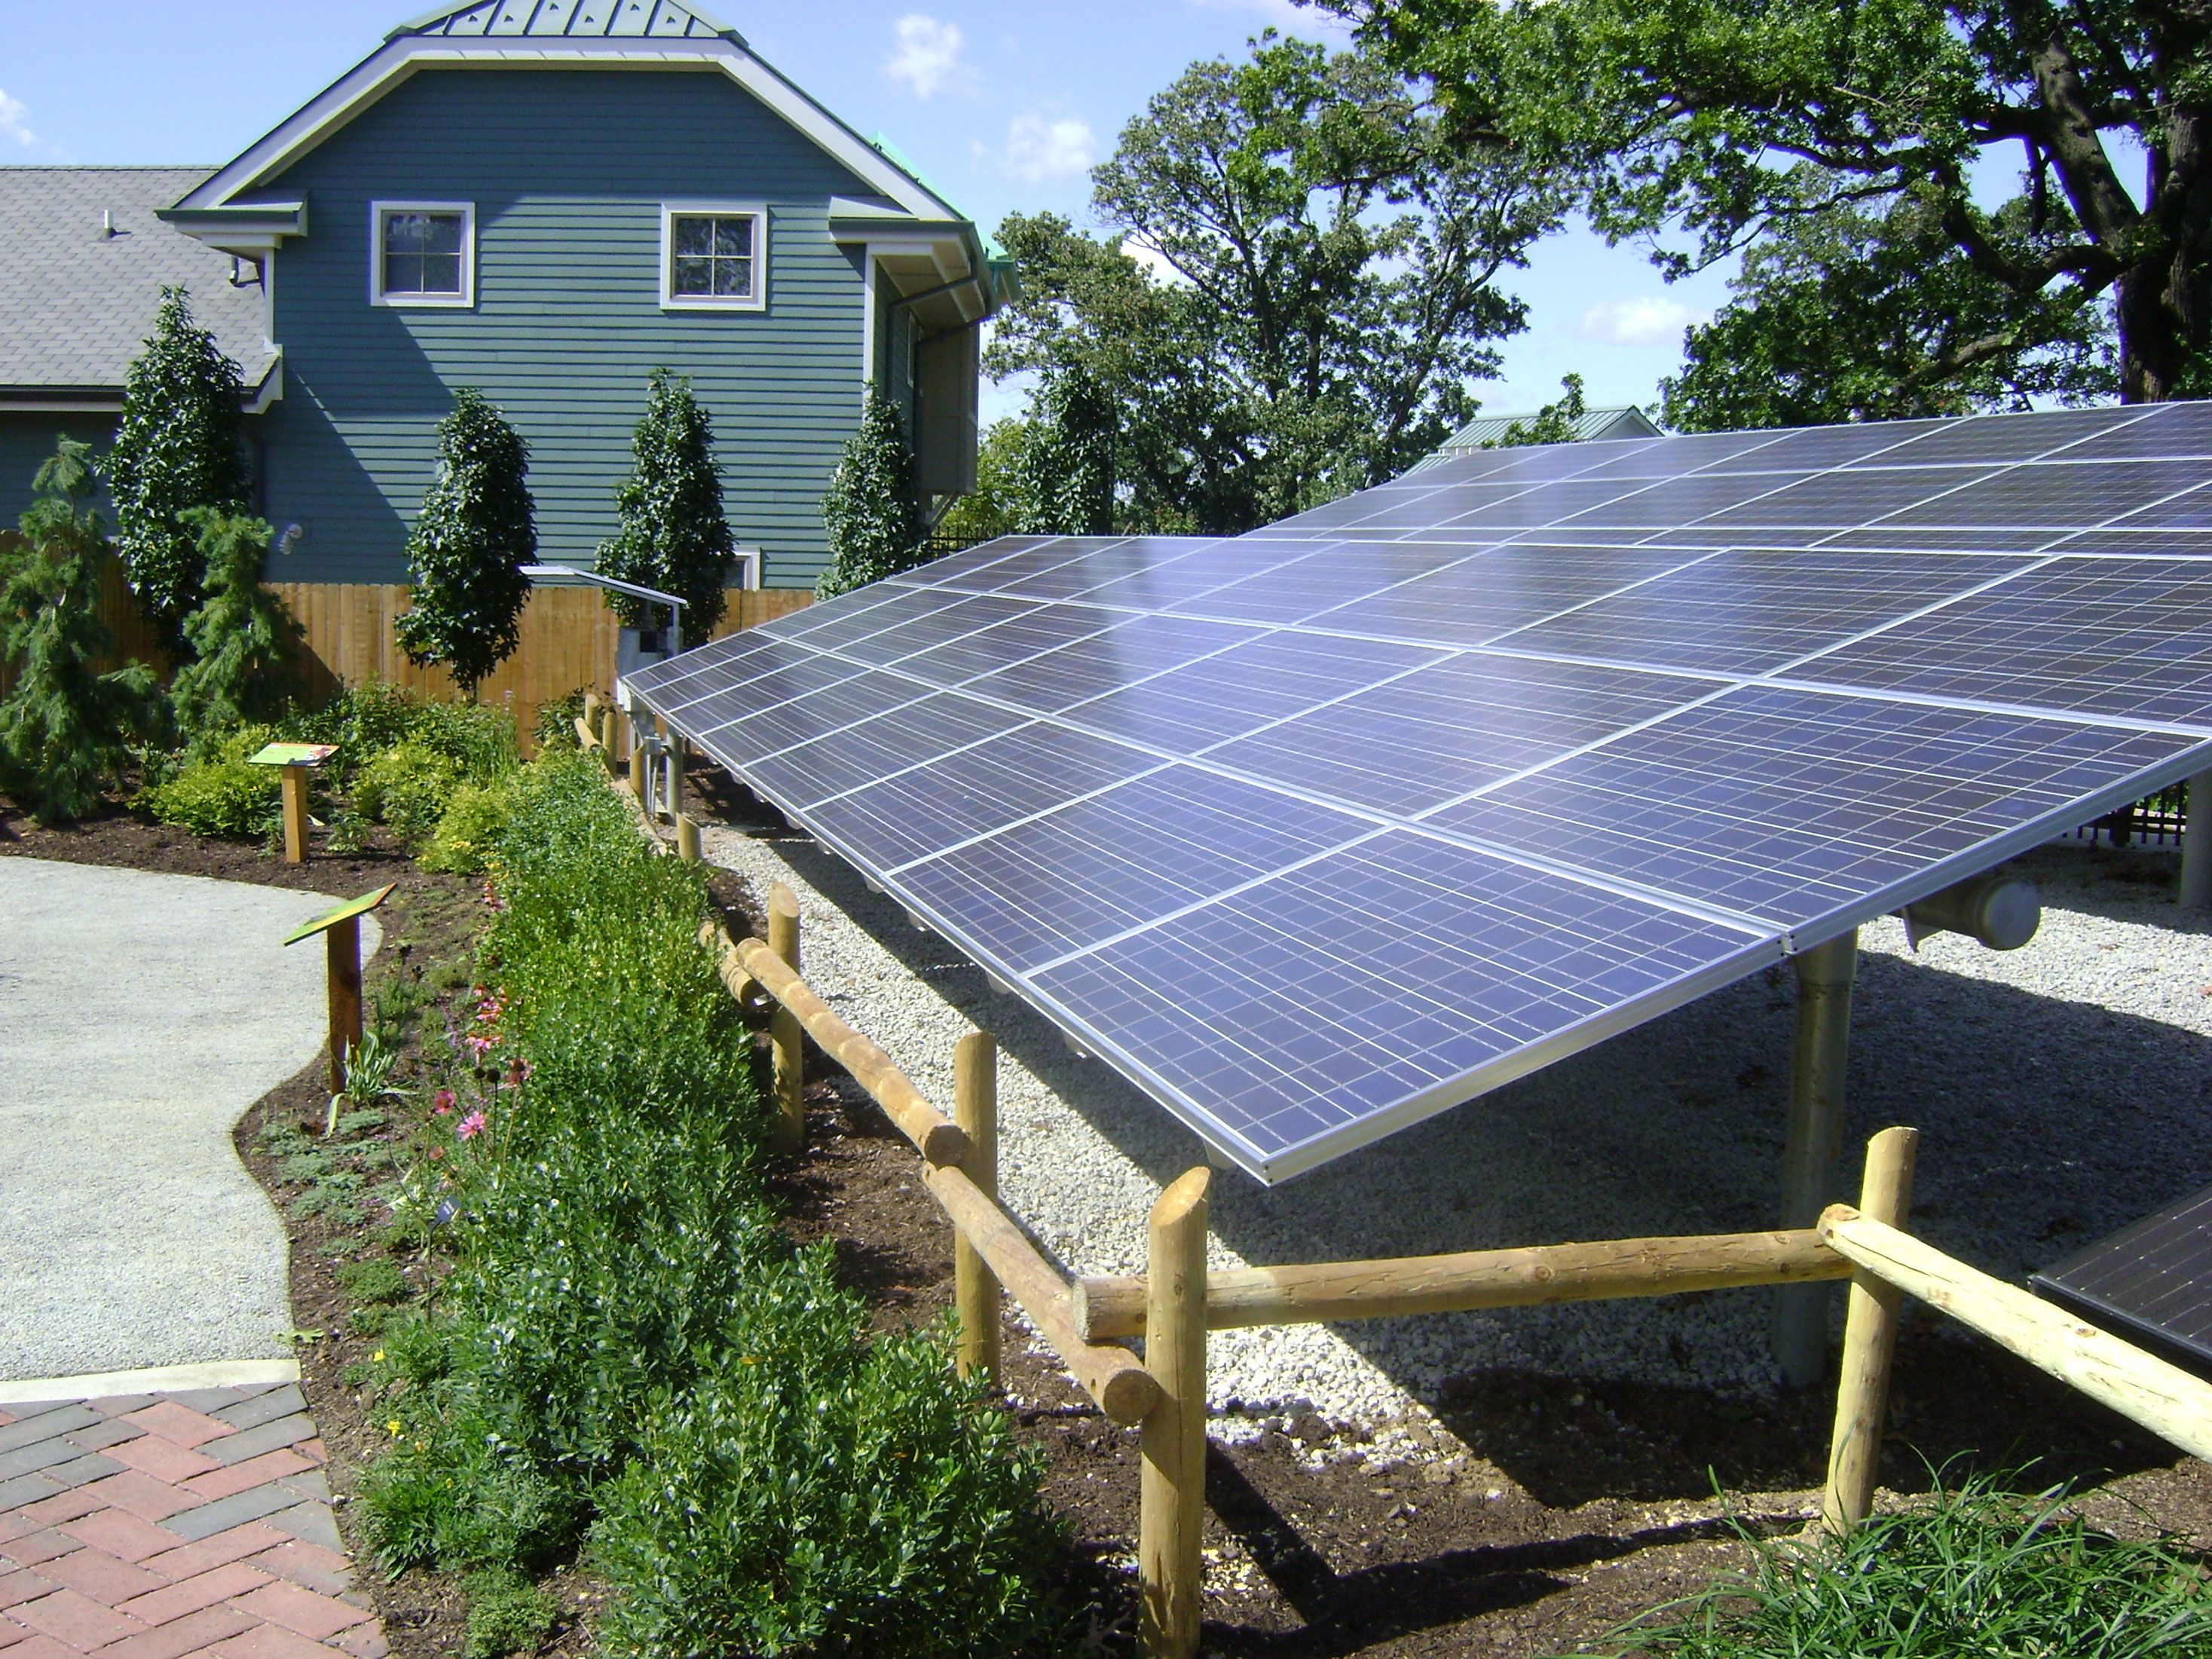 The Best Uses Of Solar Energy 1 Power Your Home With Solar Energy 2 Swimming Pools With Solar Heat 3 Solar H Solar Panels Solar Solar Hot Water Heater